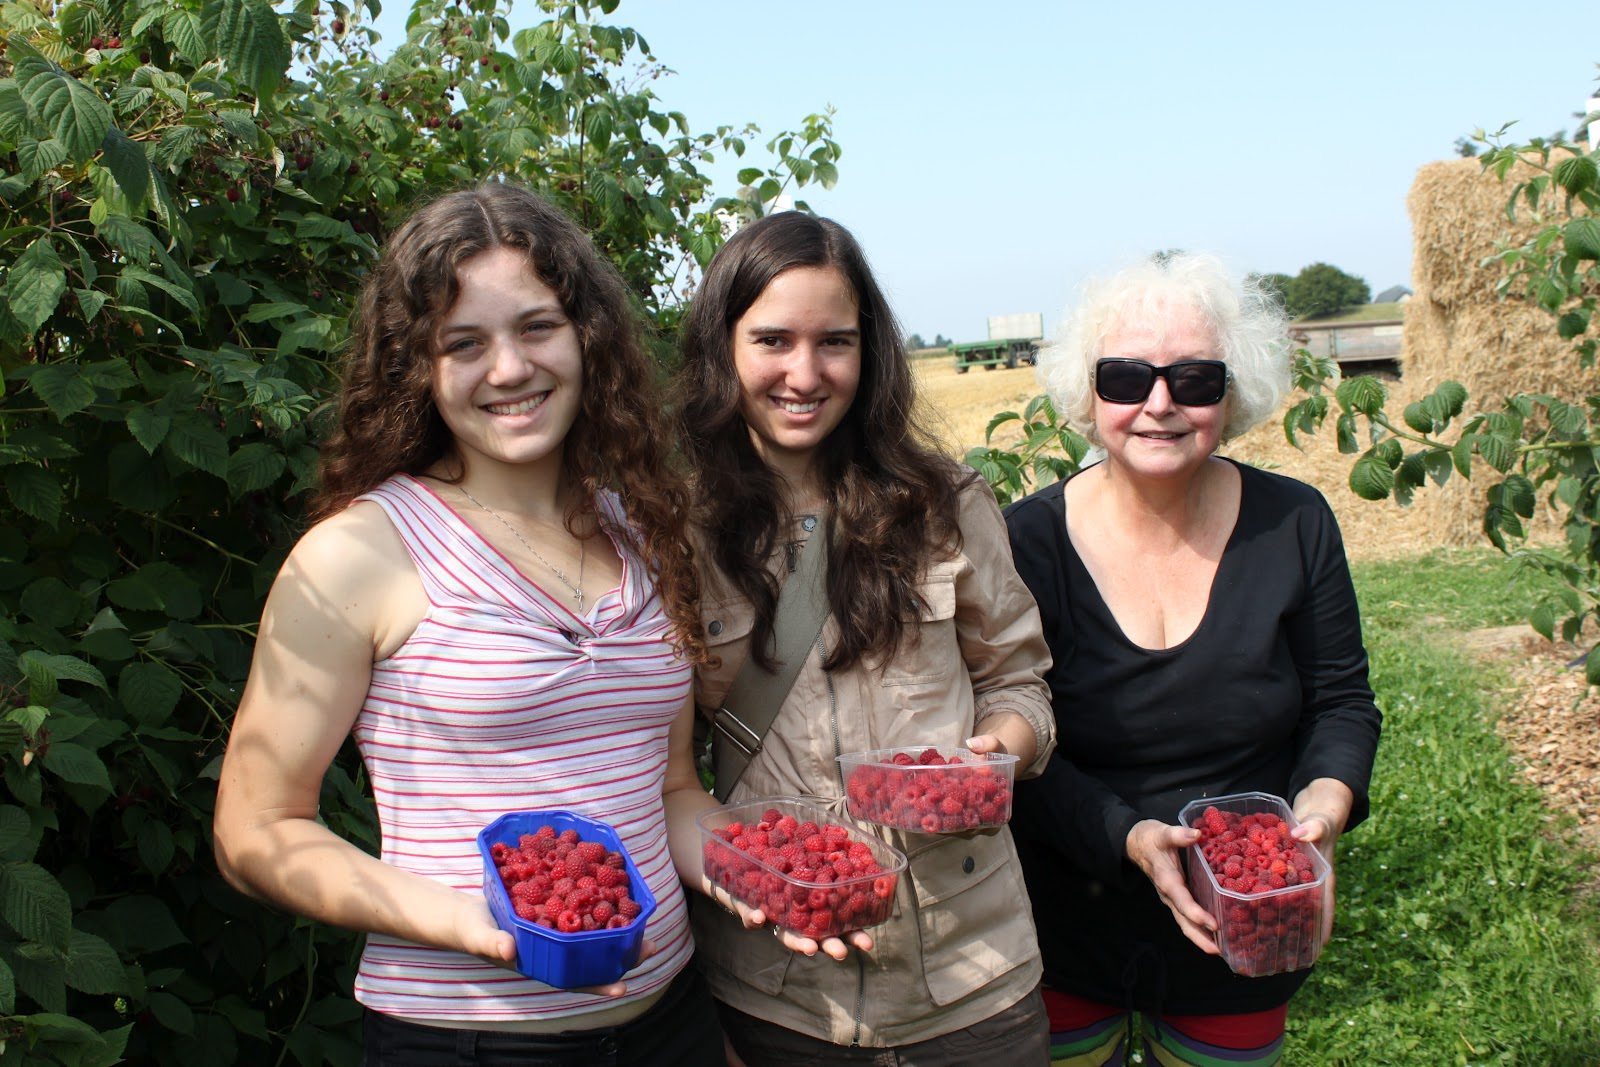 Speaking Of Facing Fears We Also Went Berry Picking Where Isabella Bravely Fought Through Swarms Of Raspberry Loving Bees To Secure The Best Fruit For Our